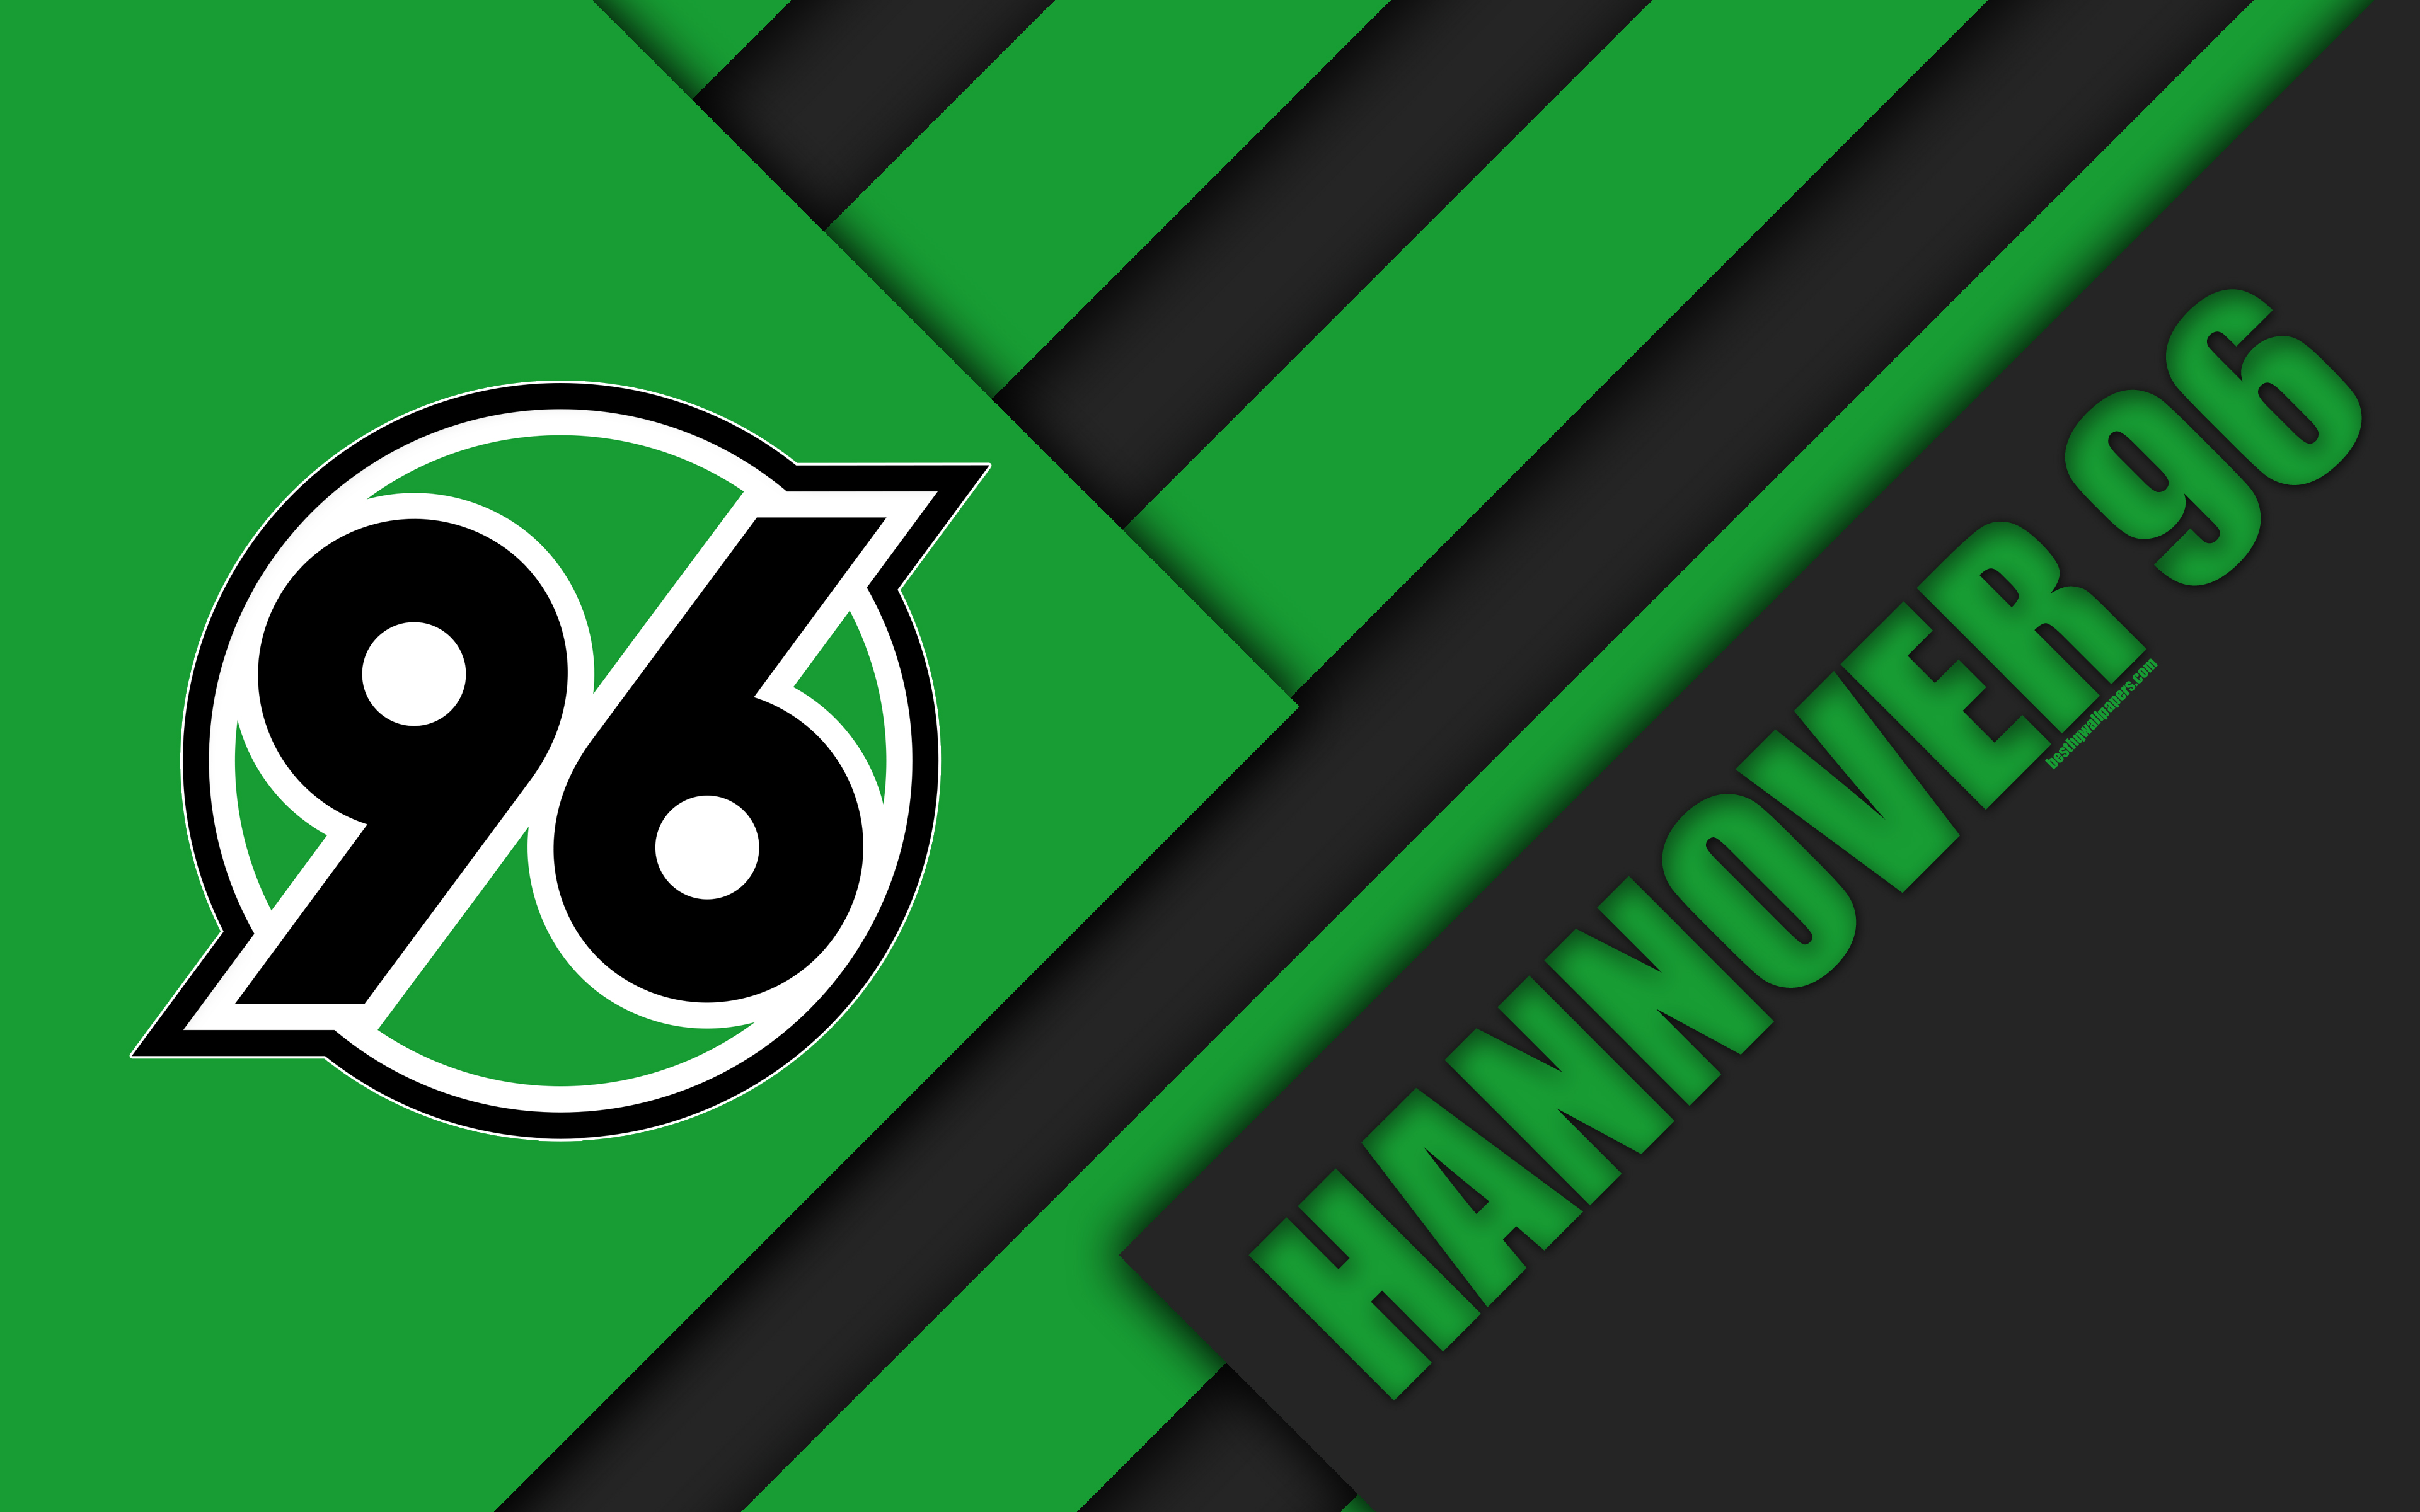 Hannover 96 Wallpapers - Wallpaper Cave